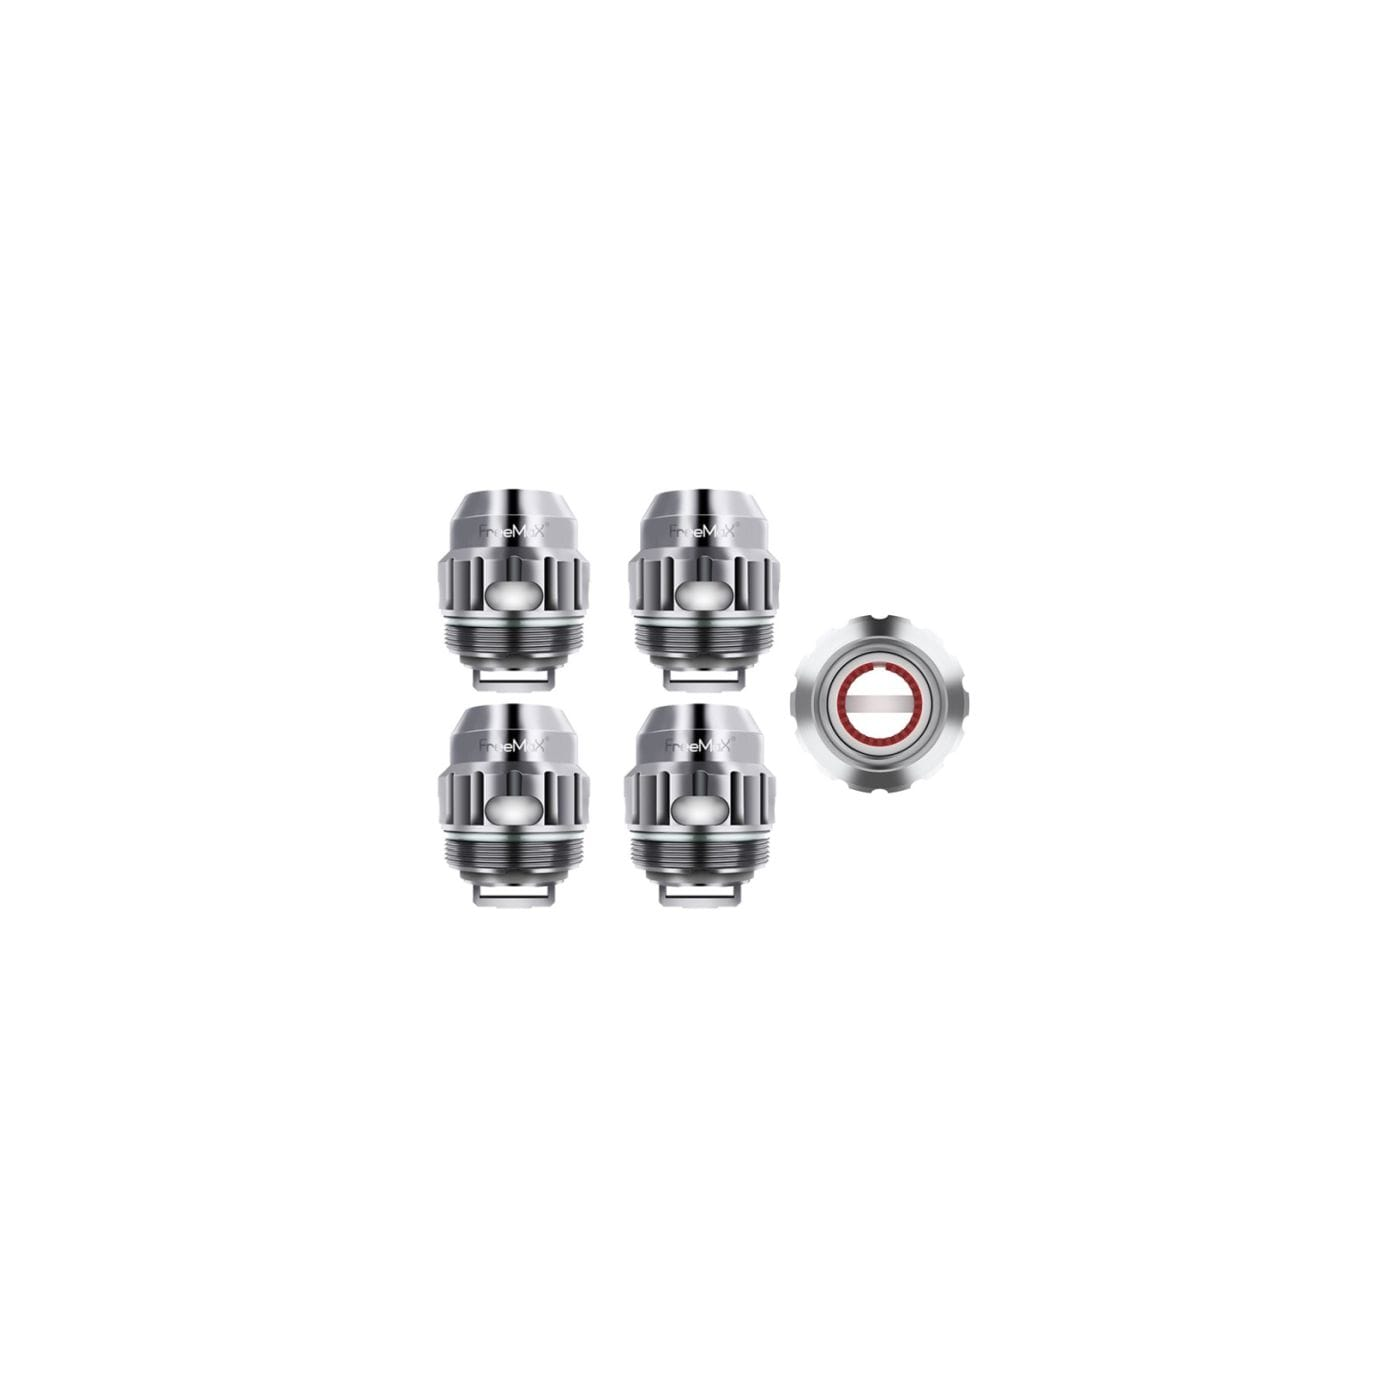 Freemax TX1 Mesh Replacement Coil - 5 Pack